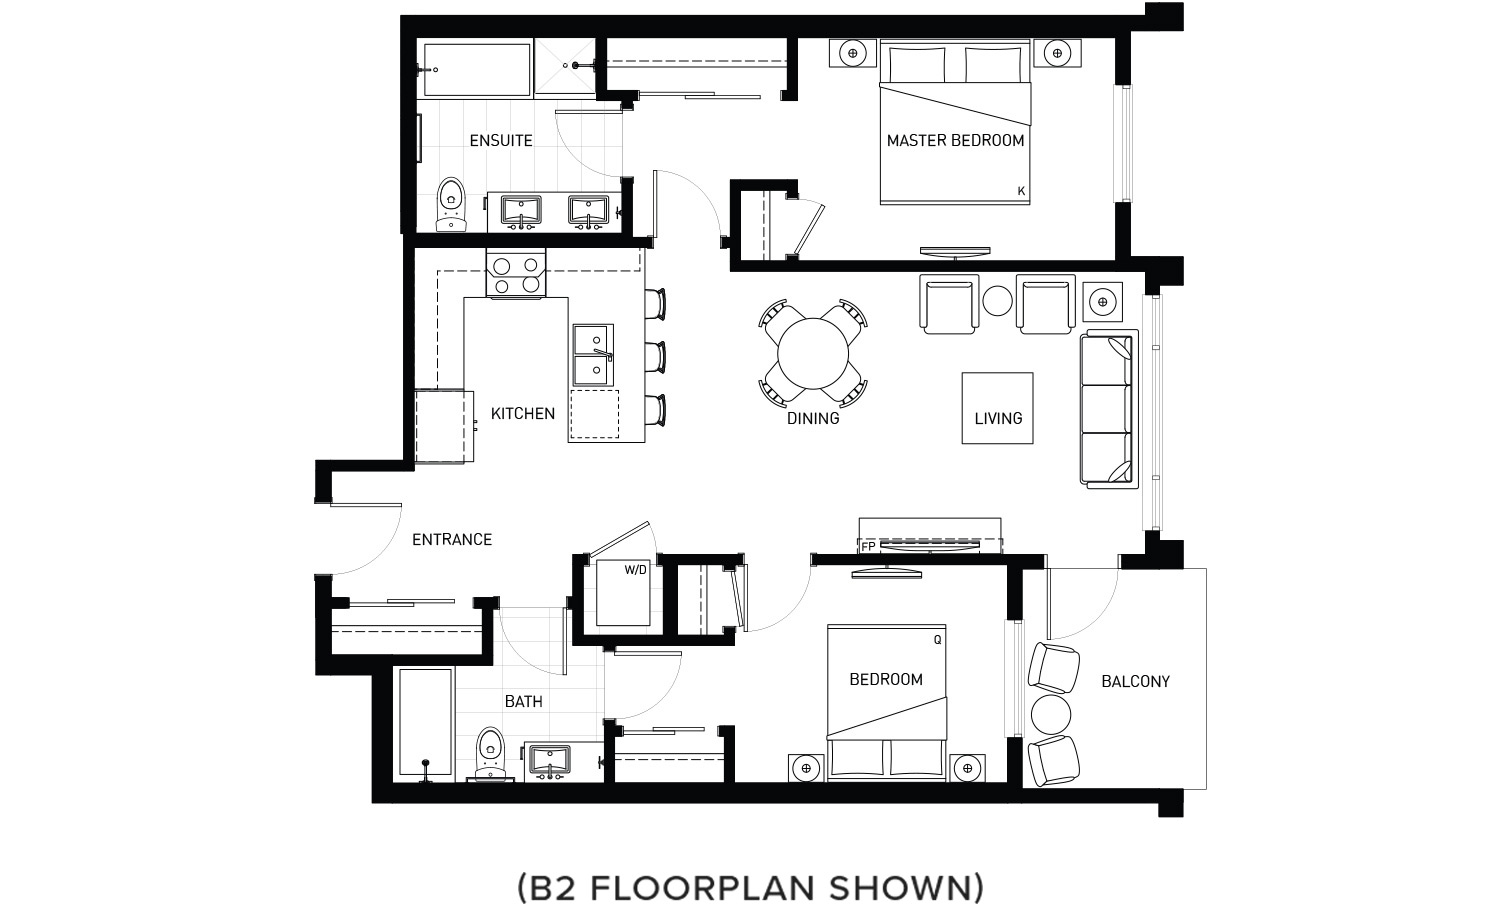 Plan B1 Floorplan